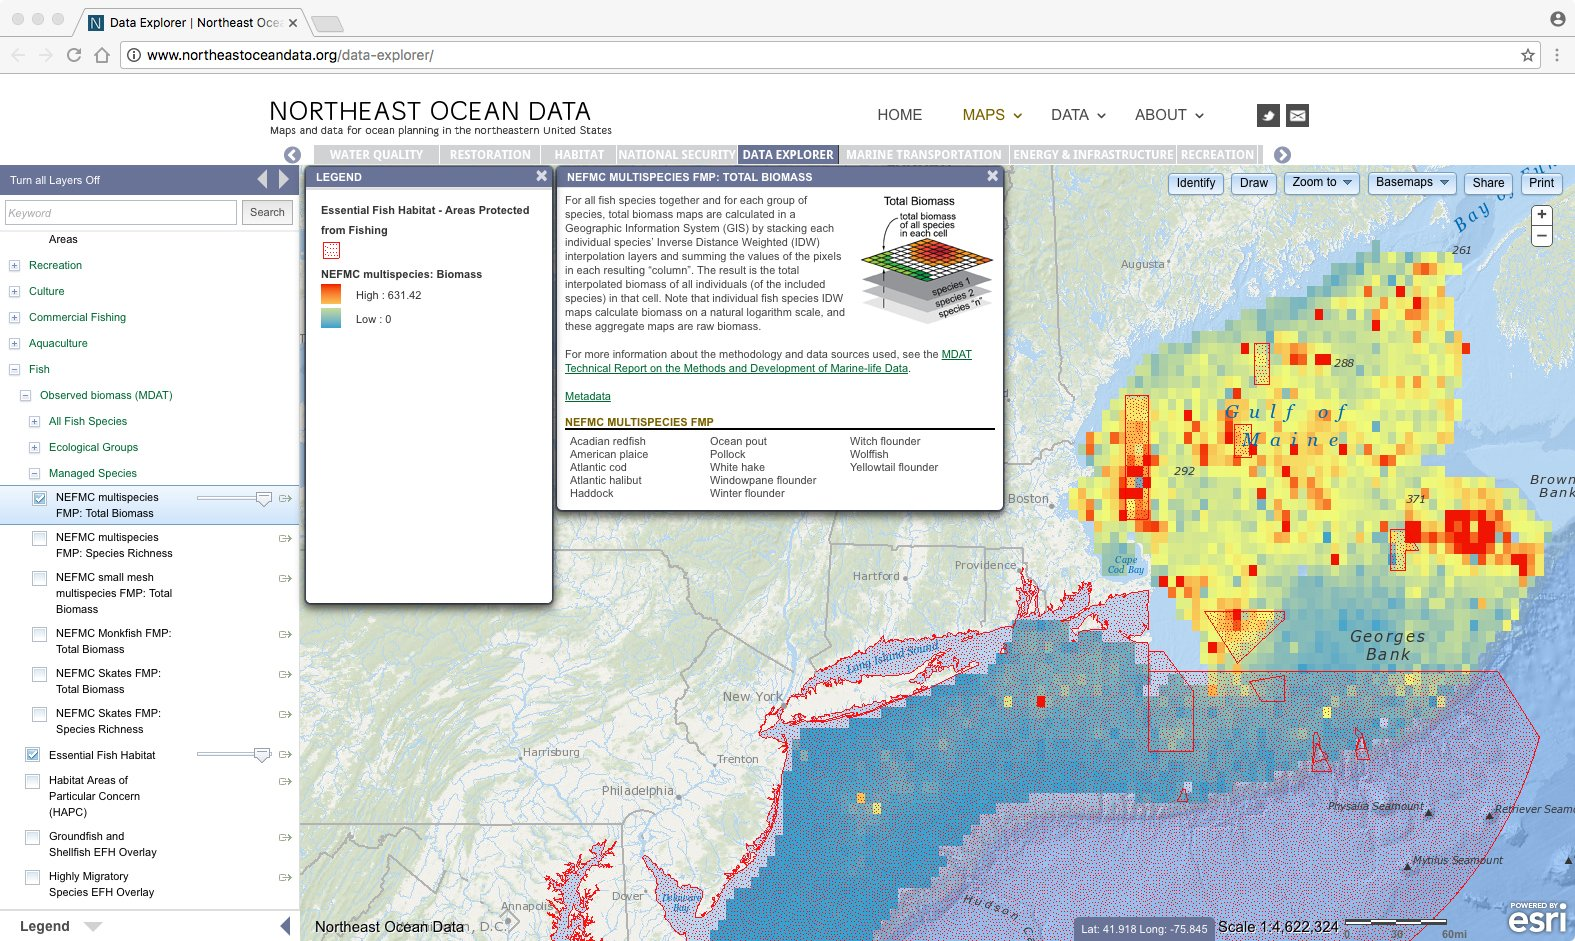 Screenshot: Designated Essential Fish Habitat areas mapped with total biomass of fish species managed under the Northeast Multispecies Fishery Management Plan